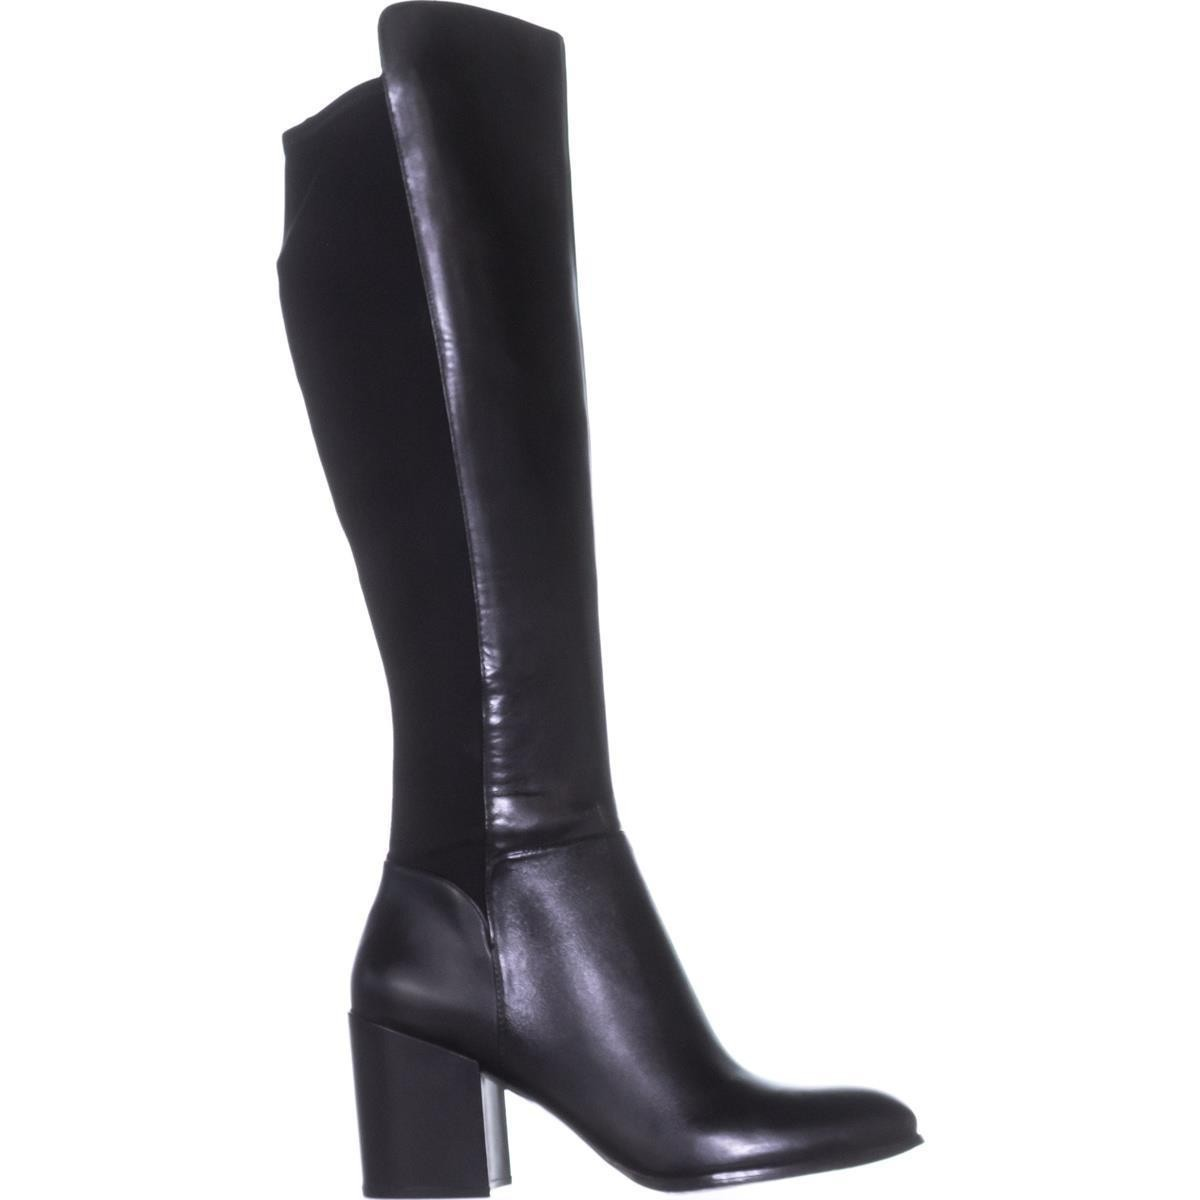 ccb004968a0 Marc Fisher Womens Lacole Leather Closed Toe Knee High Fashion ...